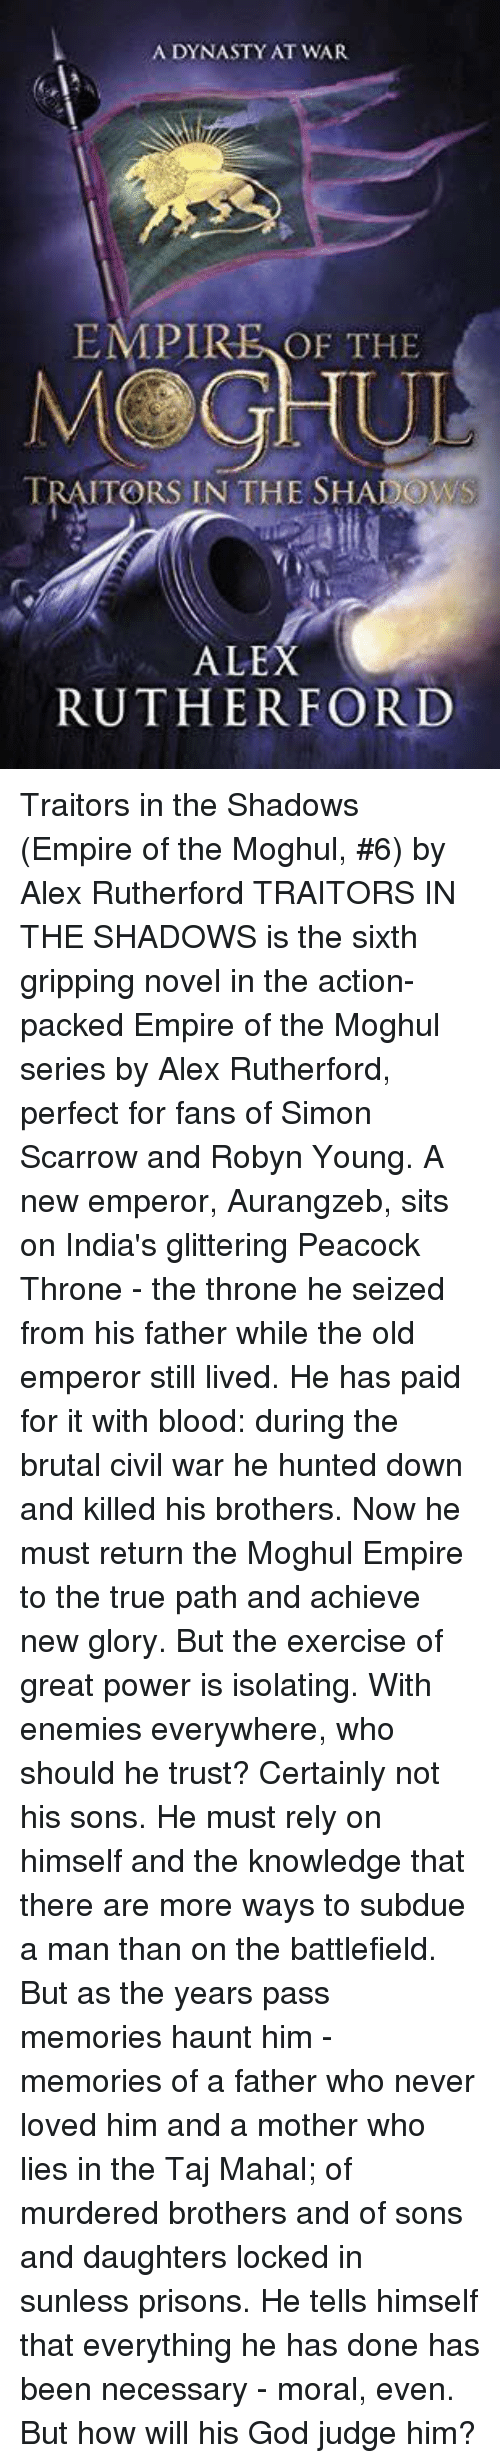 alex rutherford empire of the moghul series pdf